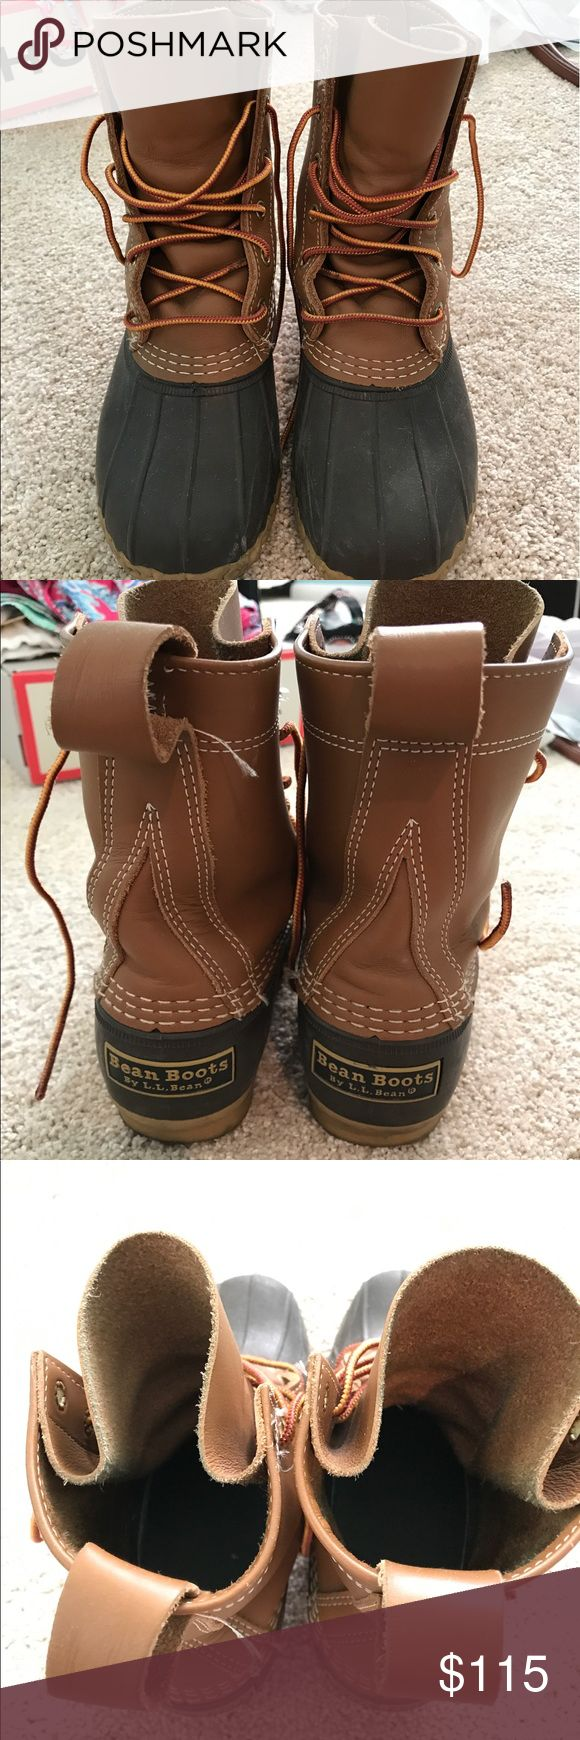 LL Bean Boots Fits a size 7. Not sure what exact size is. L.L. Bean Shoes Winter & Rain Boots